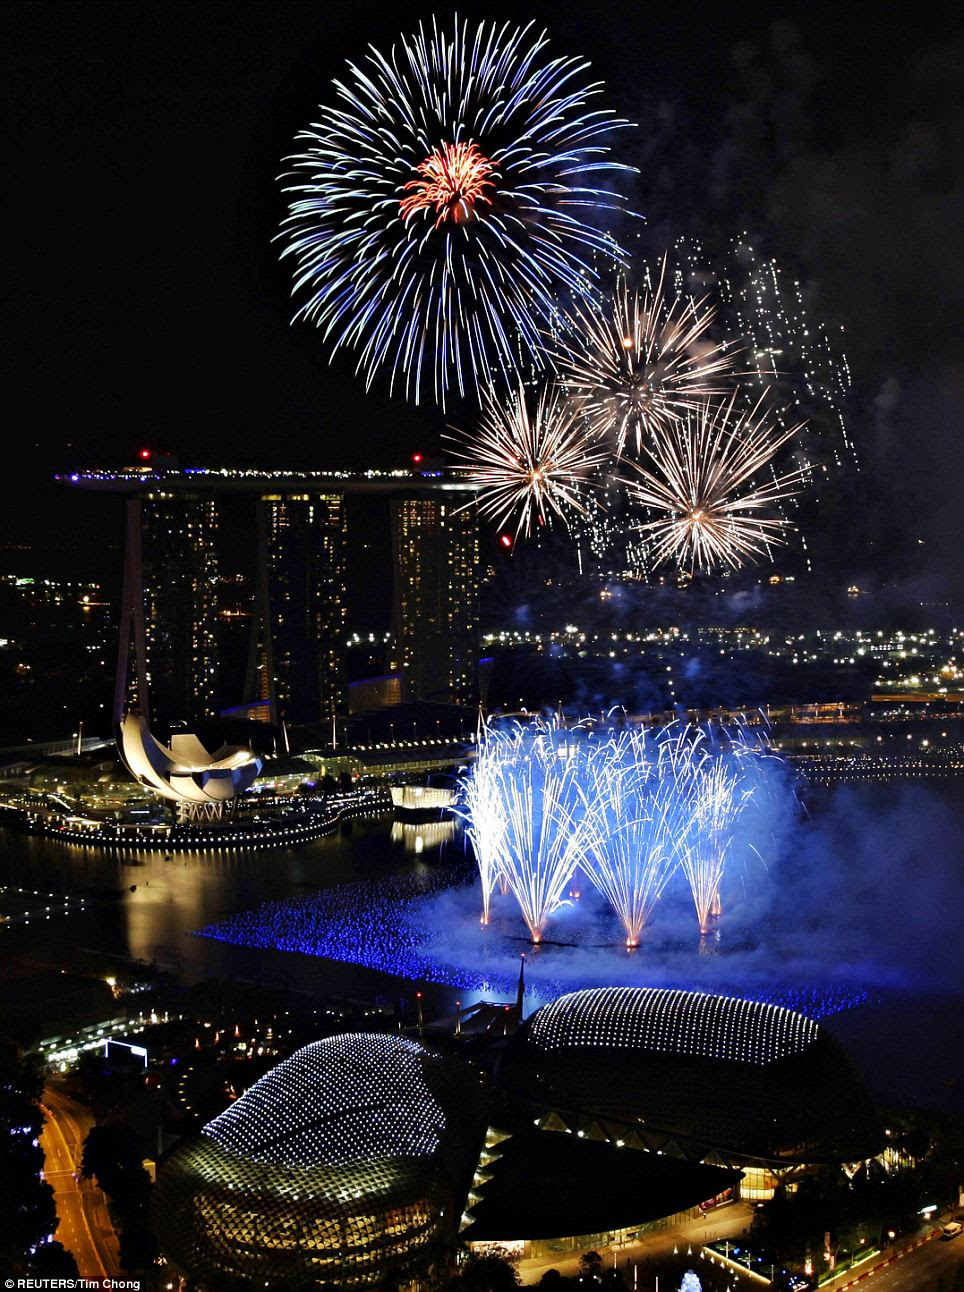 Fireworks explode over Marina Bay during the New Year celebrations in Singapore